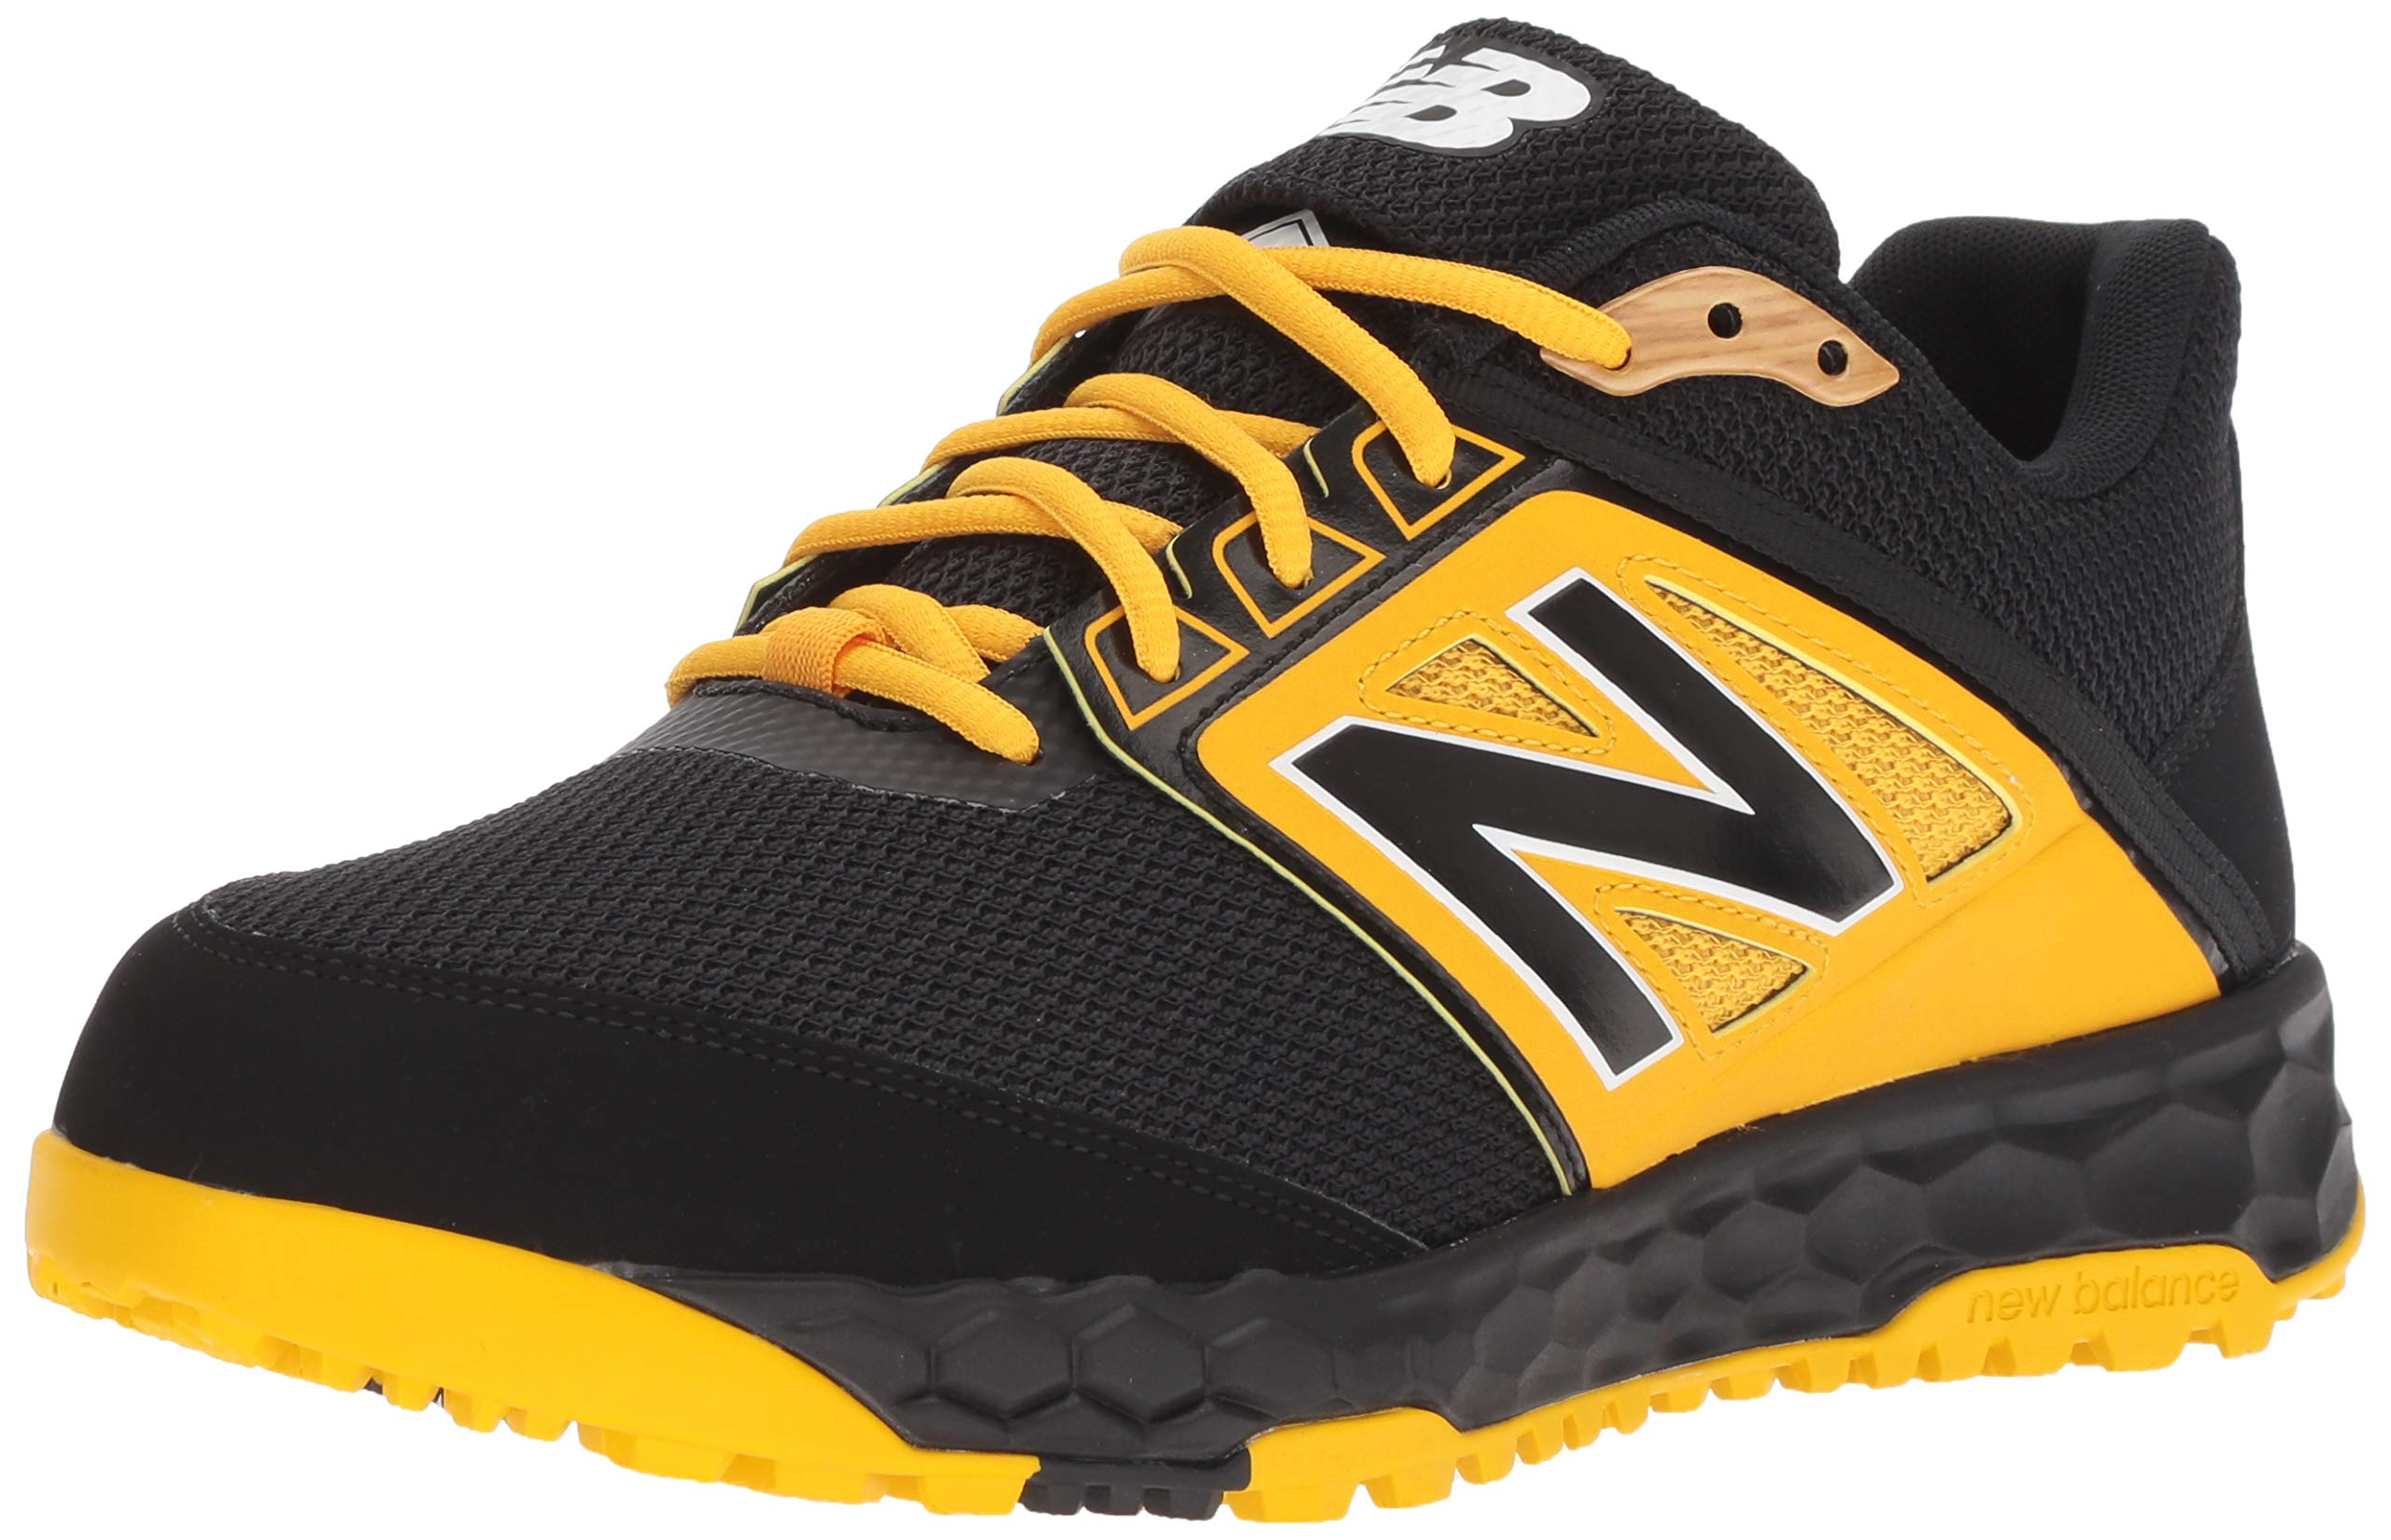 New Balance Men's 3000v4 Turf Baseball Shoe, Black/Yellow, 5 D US